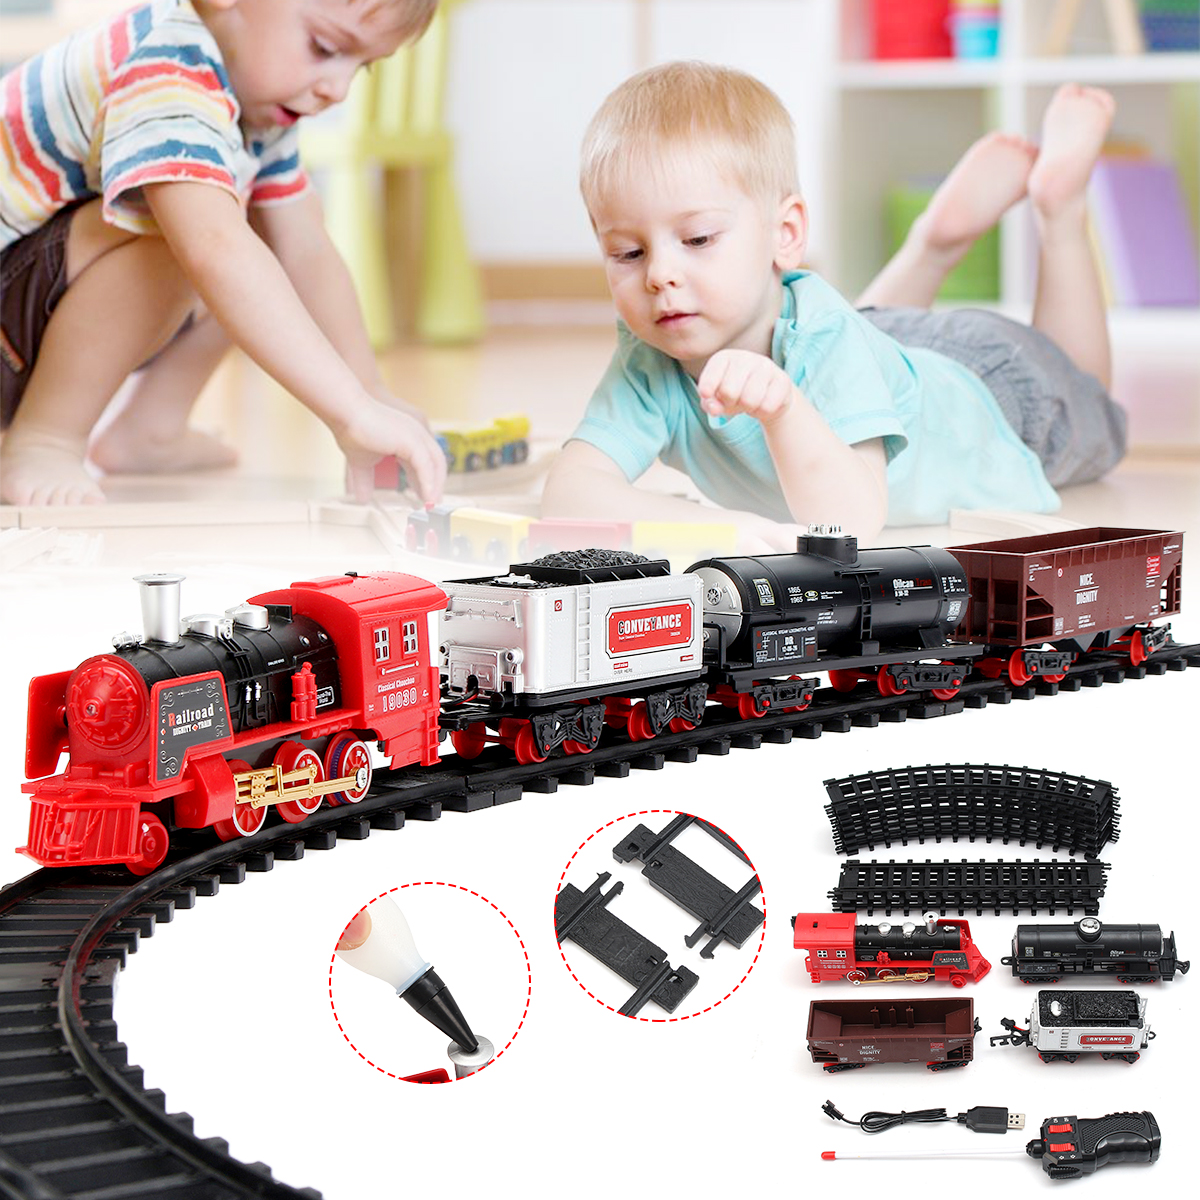 Radio Controlled Classical Simulation RC Steam Locomotive Train Set Rechargeble With Real Smoke, Music, and Lights Railway Car Set